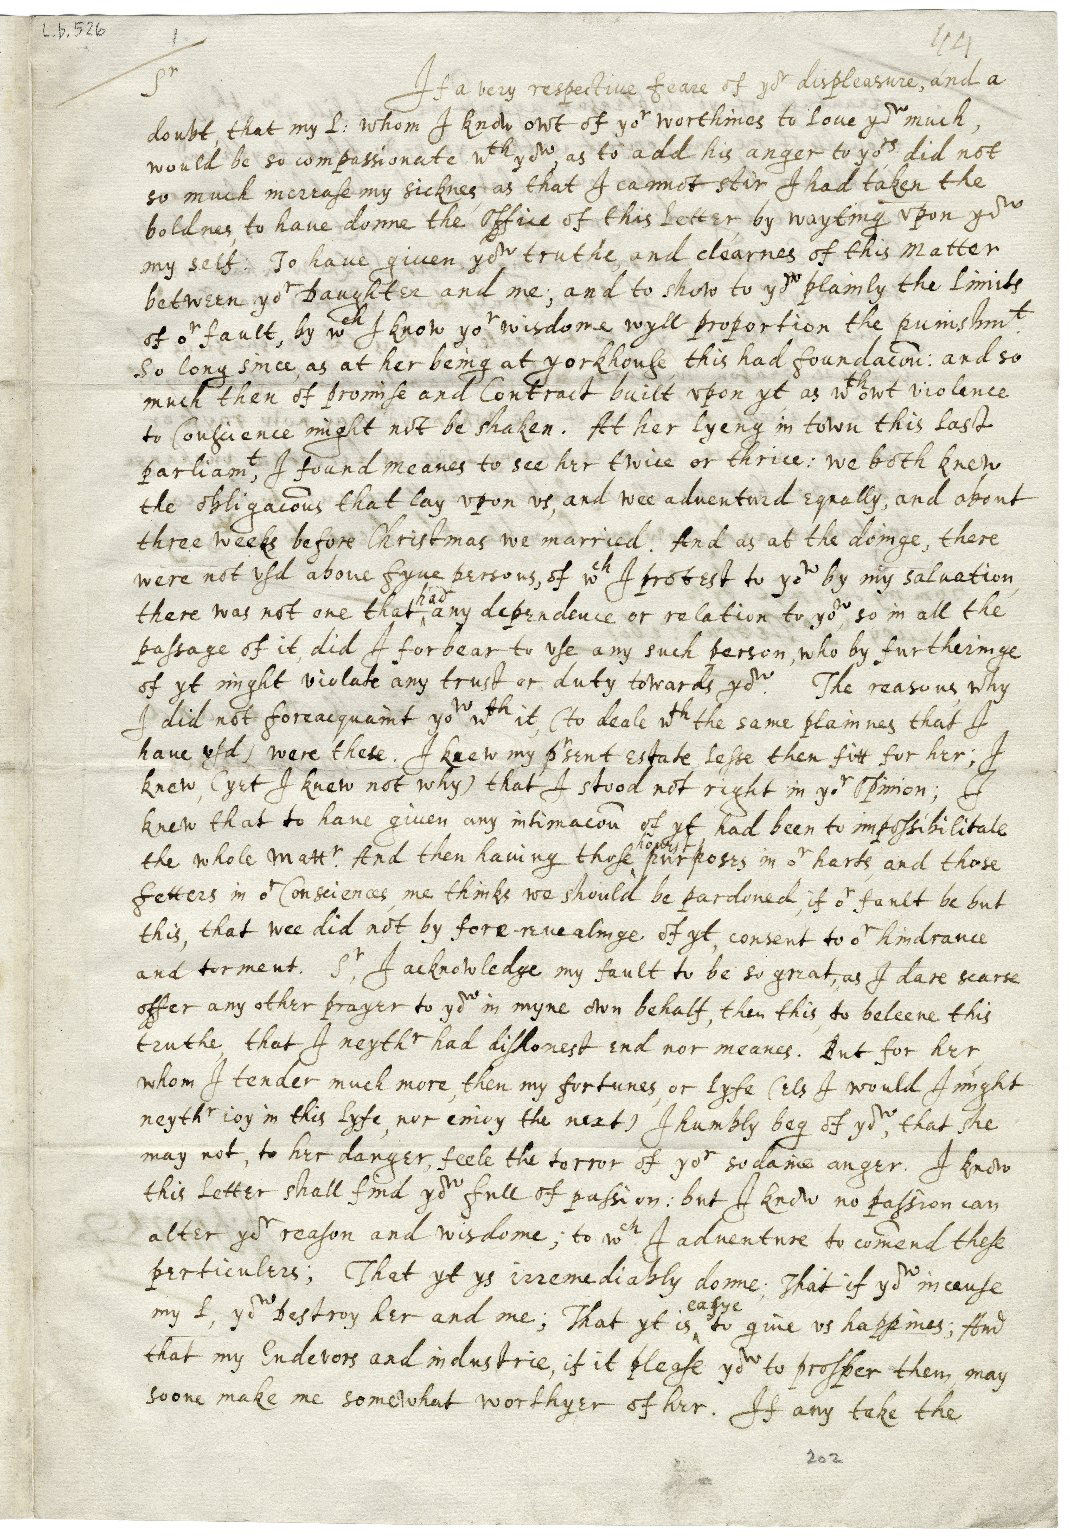 Letters from John Donne about his secret marriage to Ann More